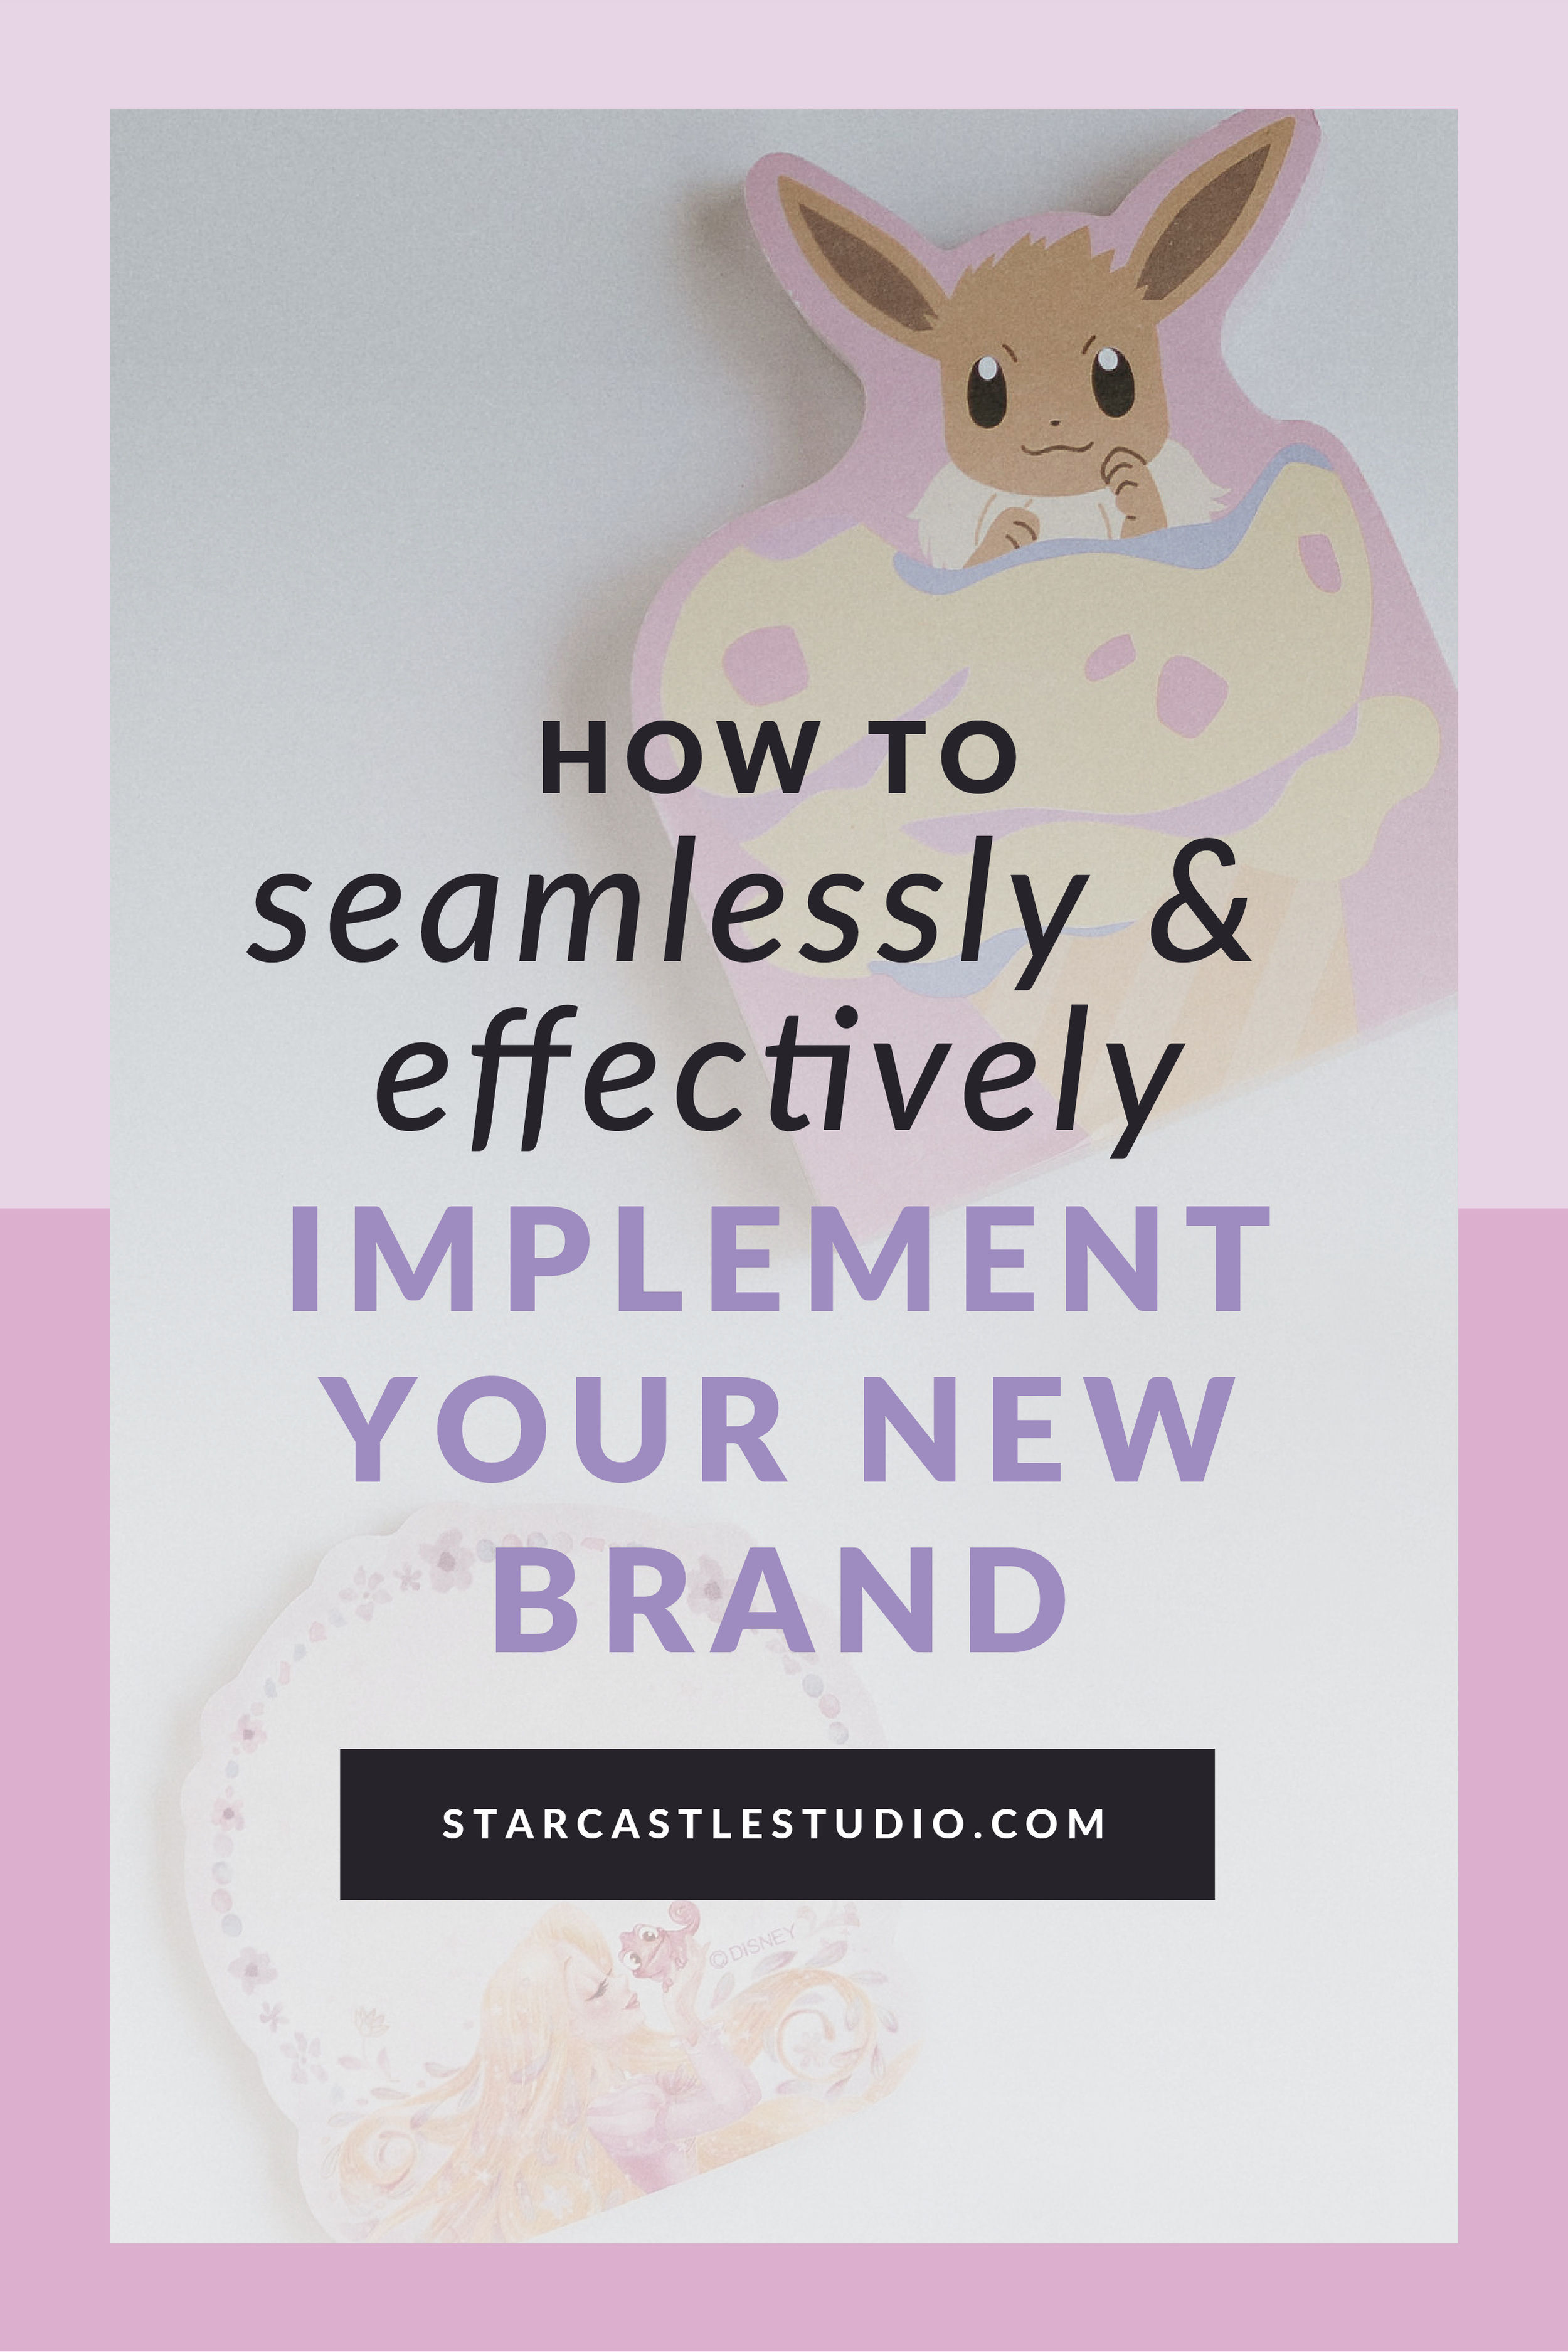 How to implement your new brand